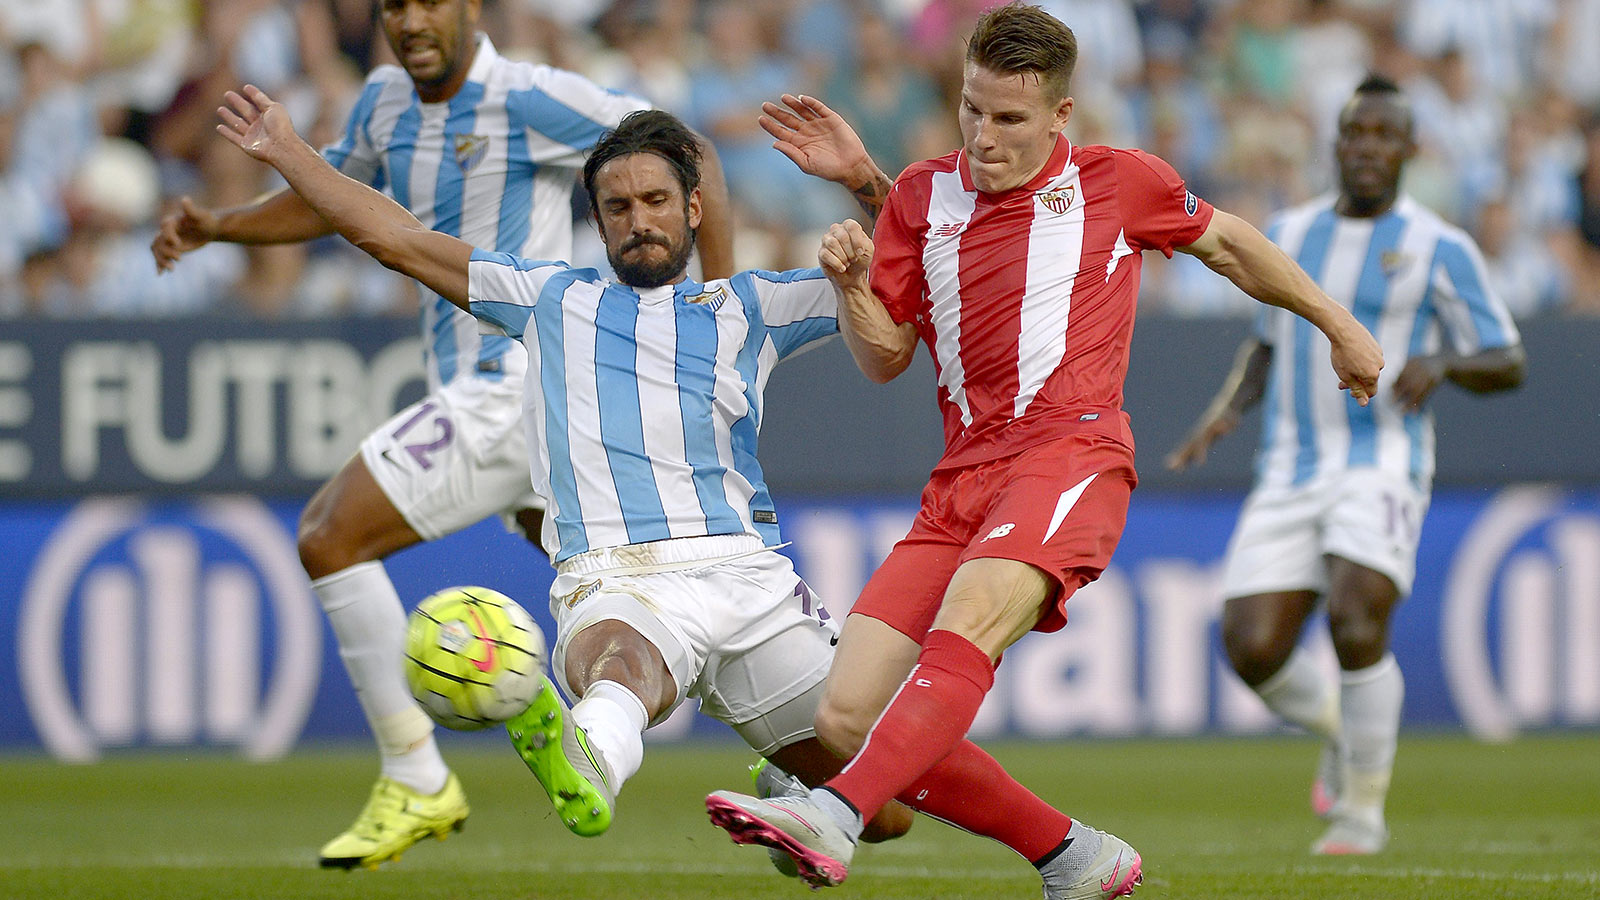 Sevilla open La Liga campaign with goalless draw at Malaga